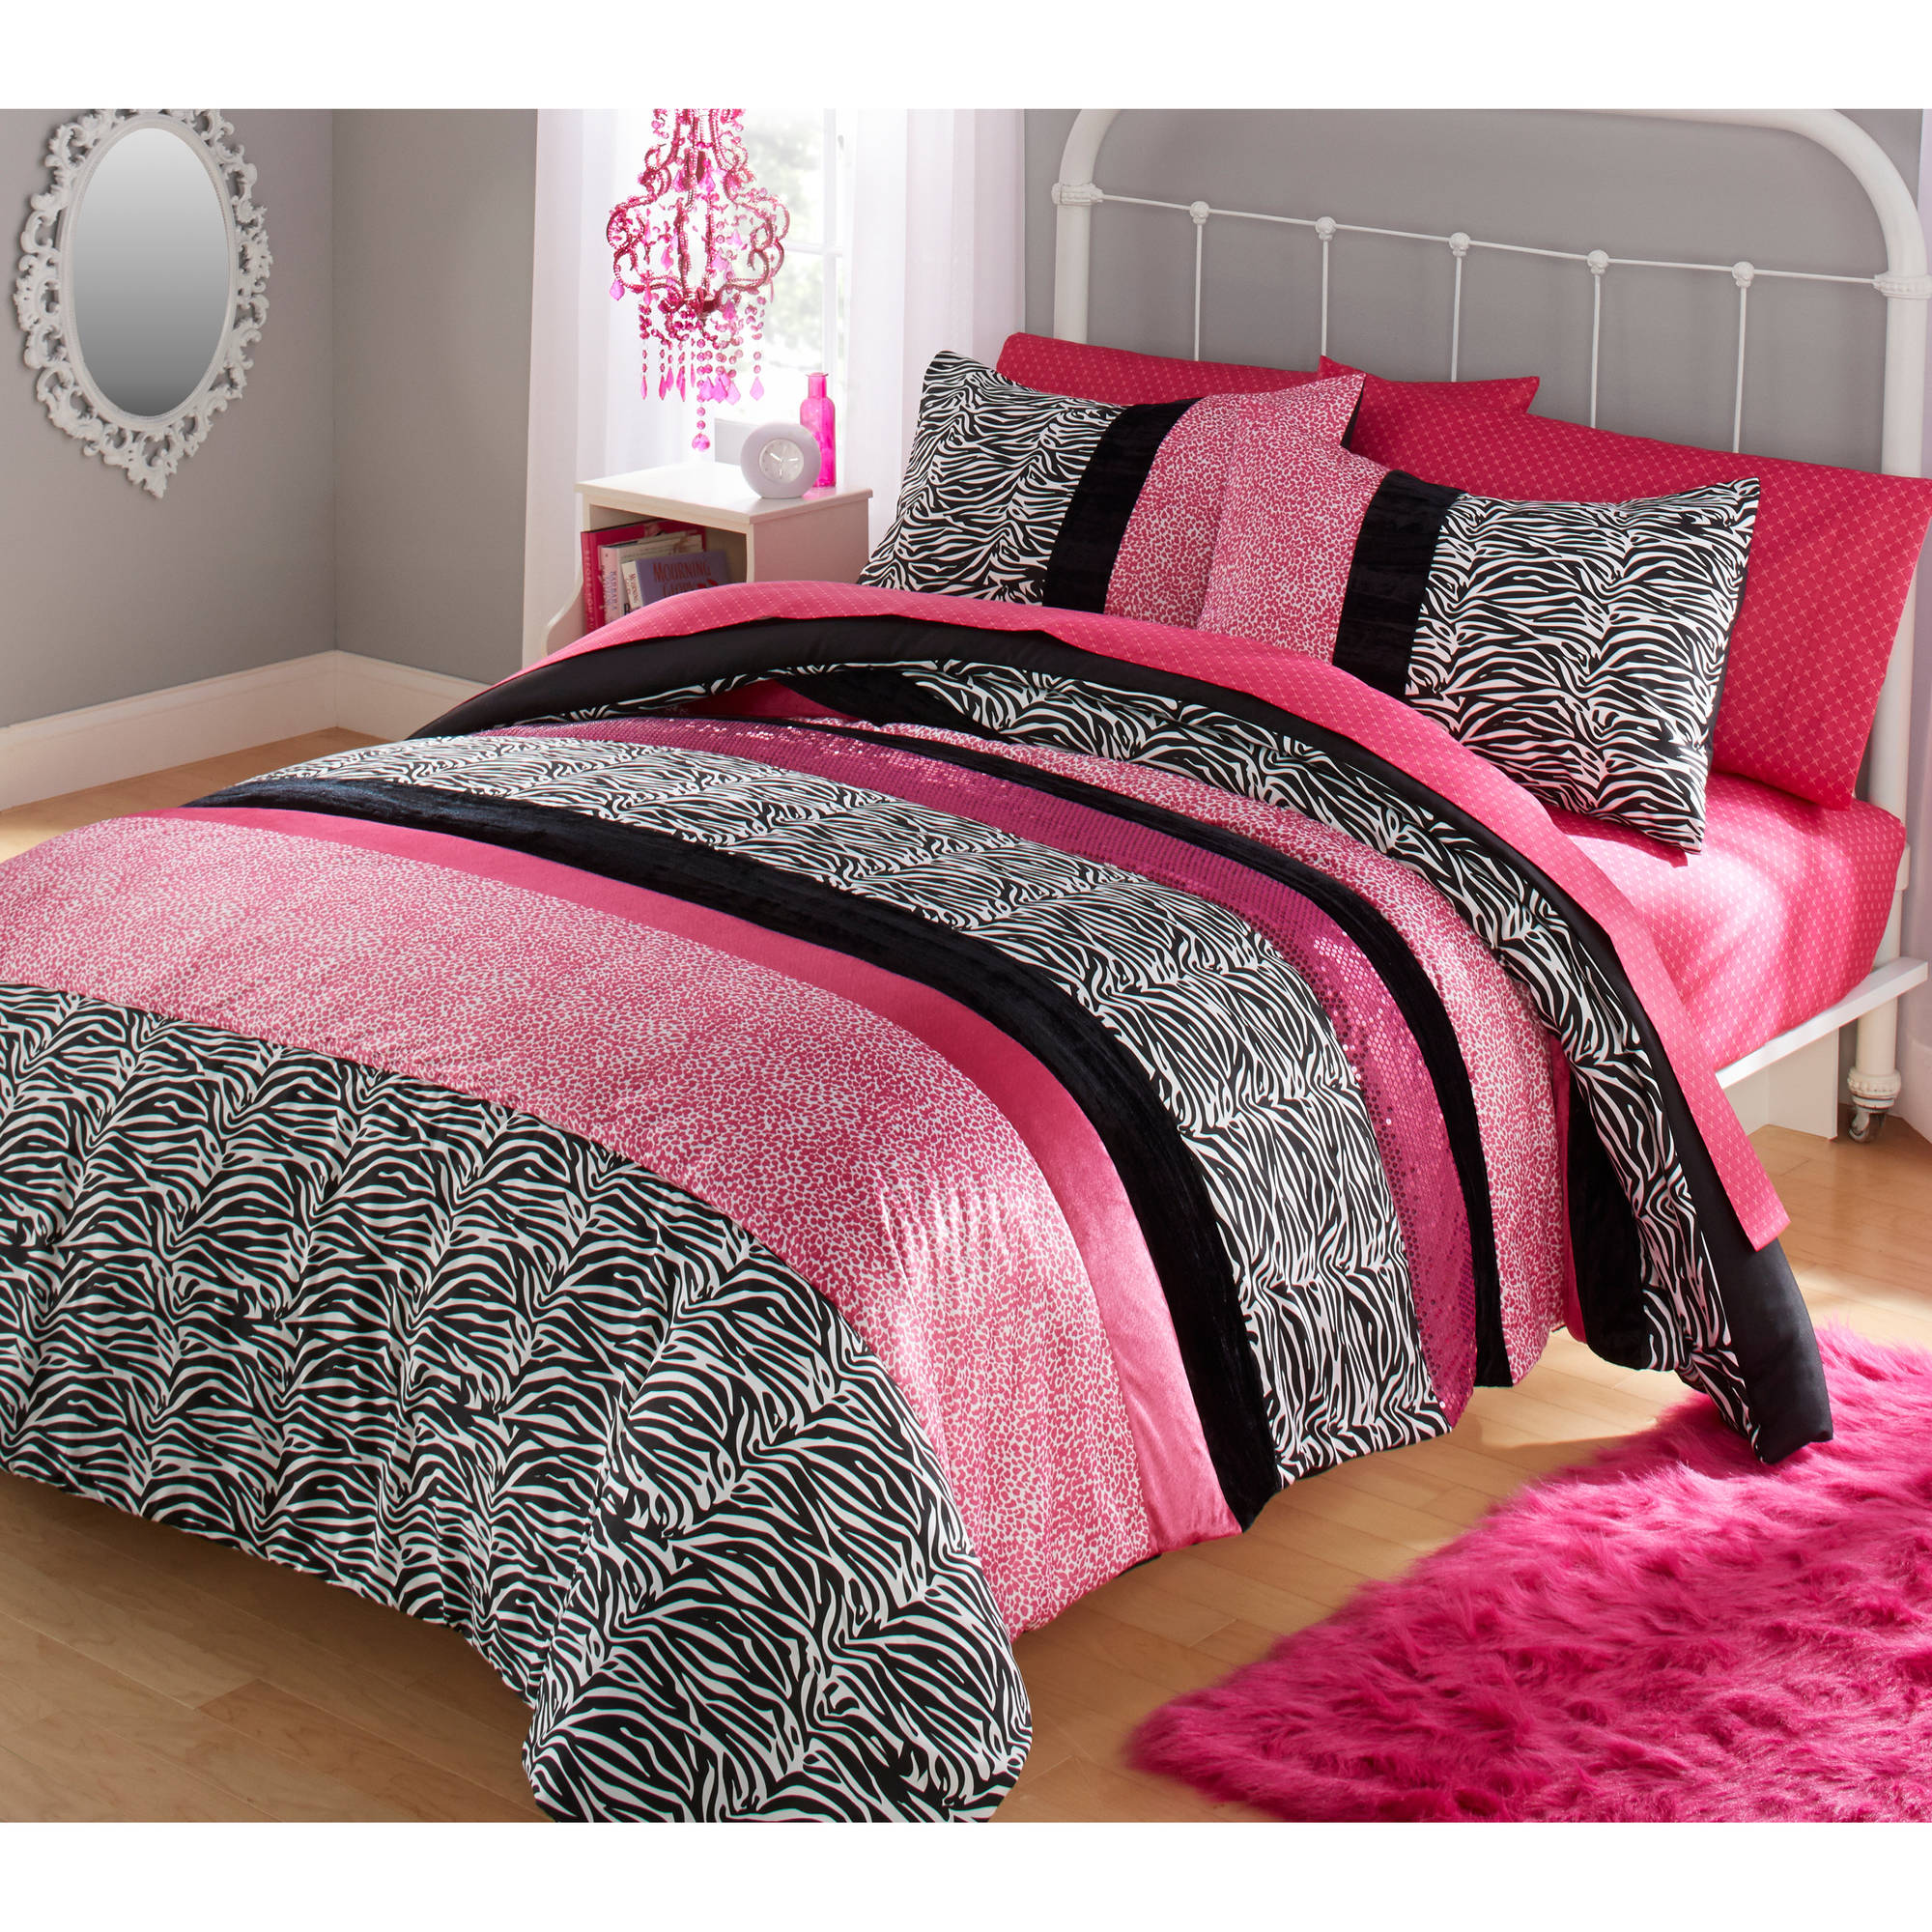 pink esco cod quilt site bright solid ruffle xl duvet reversible cape twin bedding cover set comforter